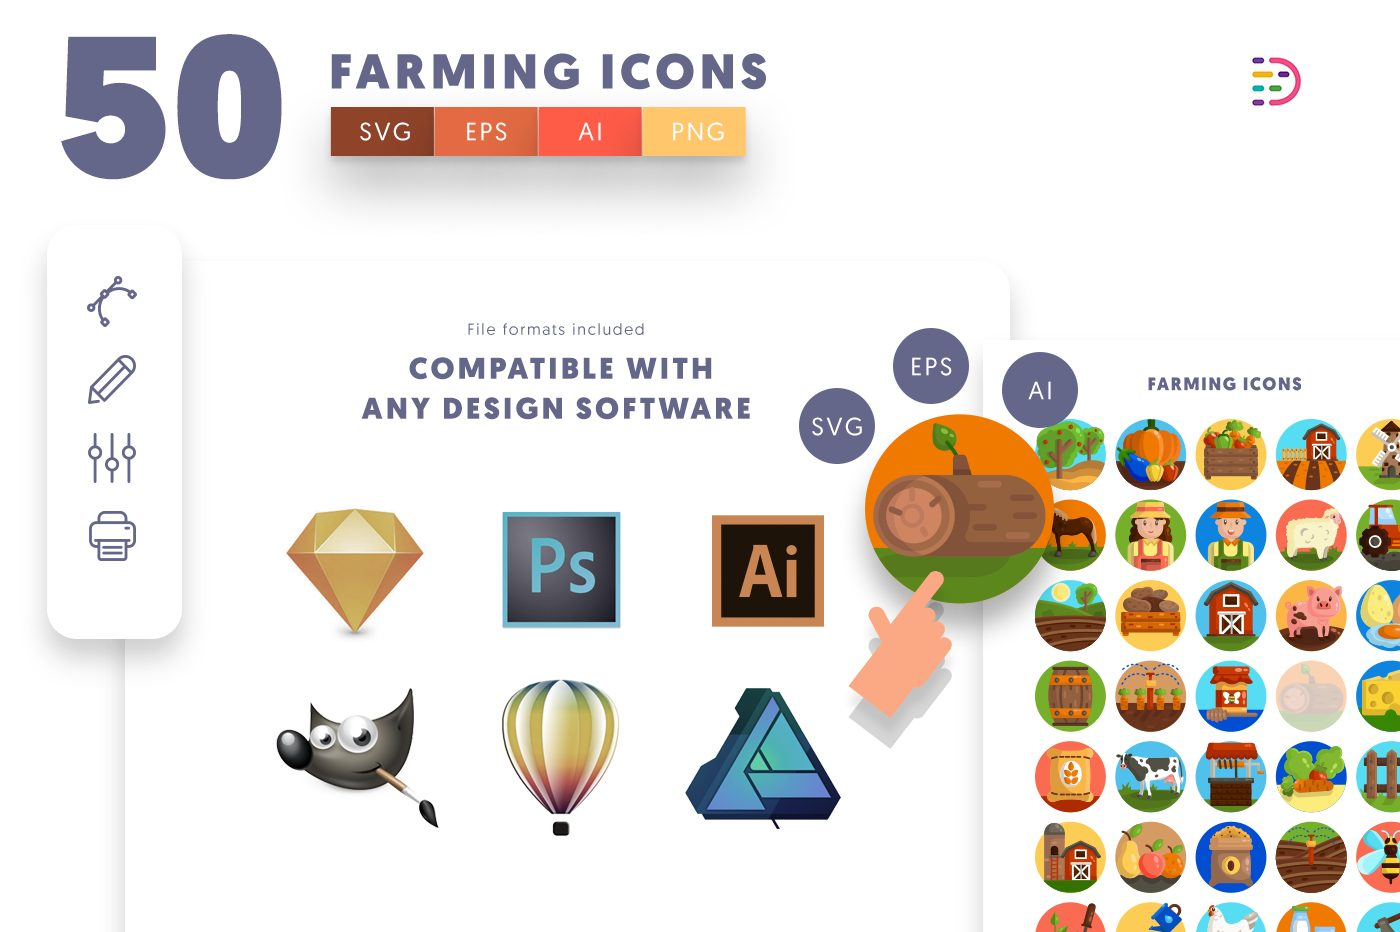 full vector 50 Farming Icons EPS, SVG, PNG